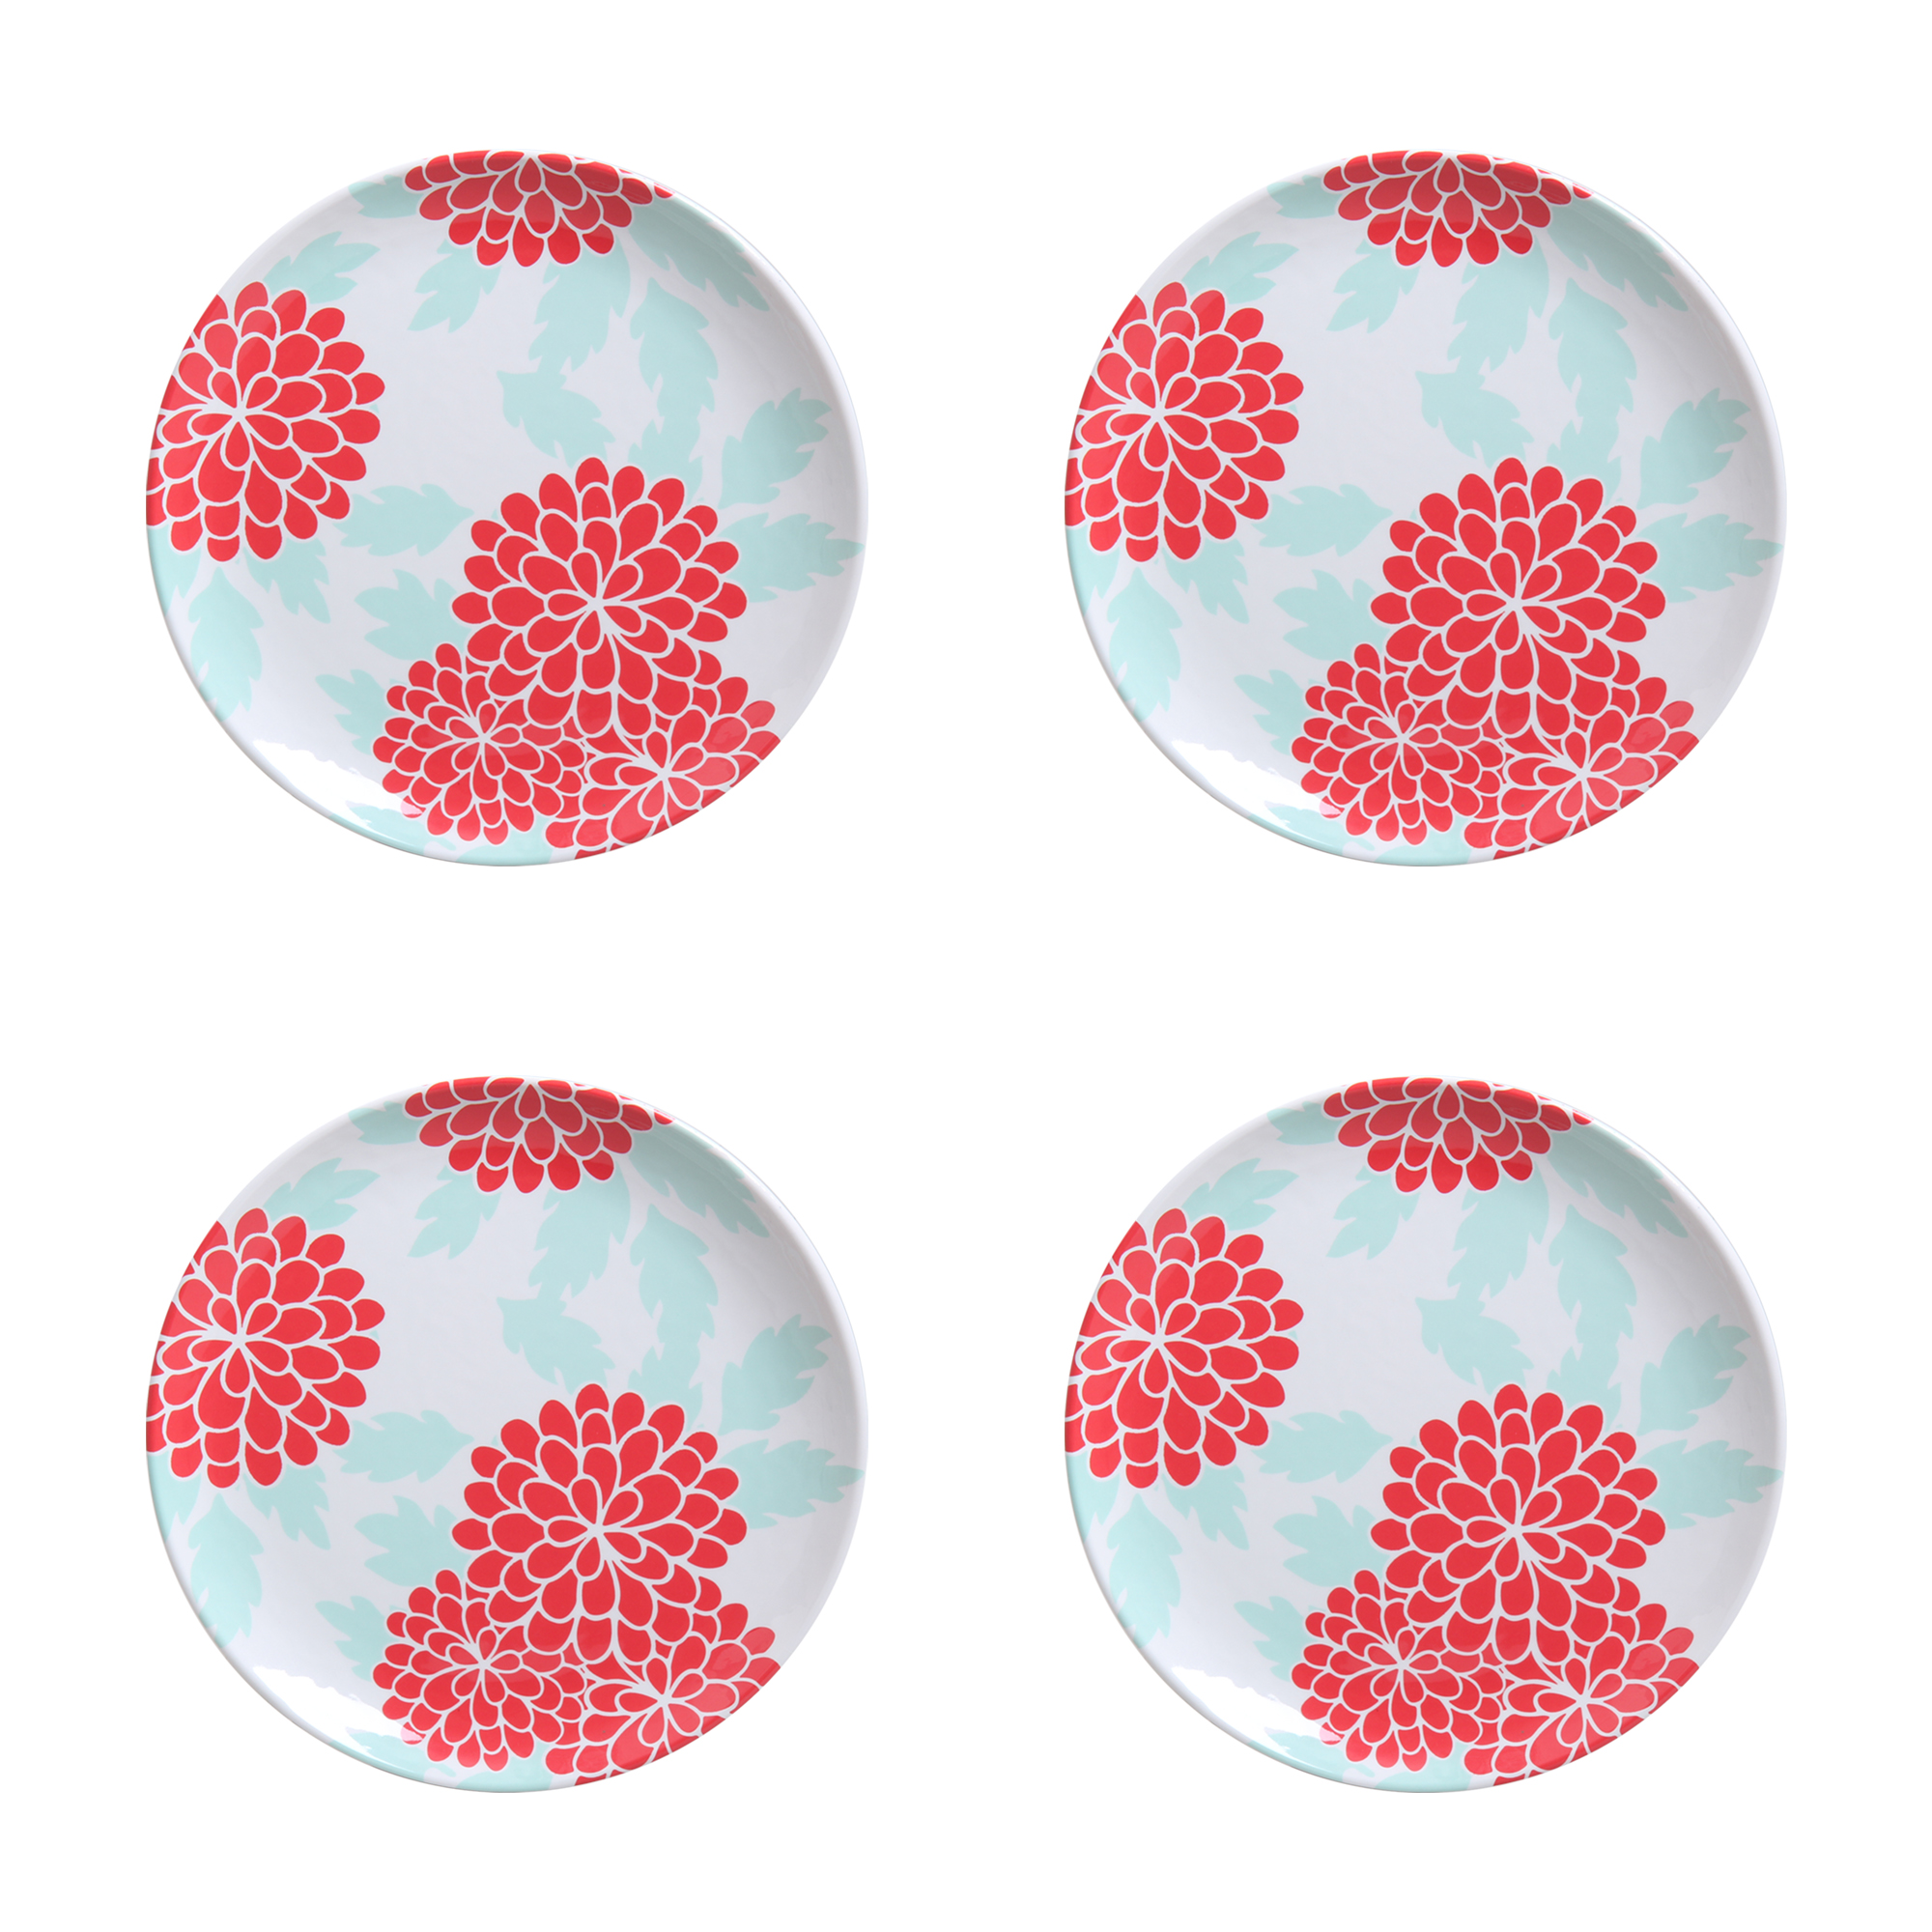 Better Homes & Gardens Teal Floral Melamine Set of 4 Salad Plates